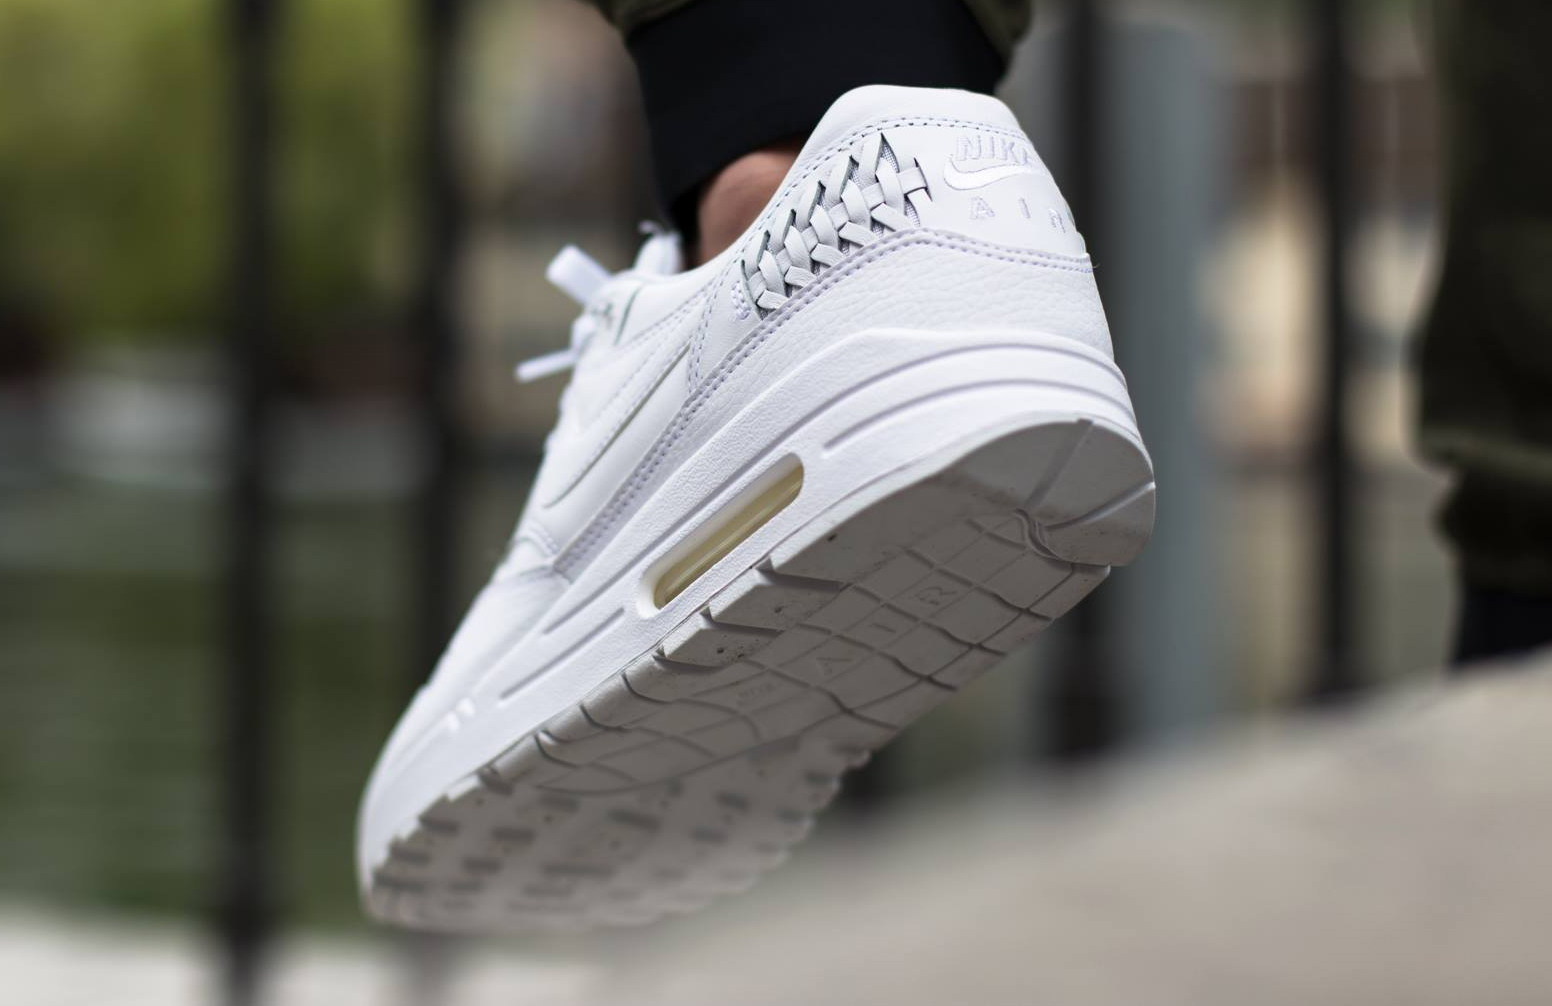 393a39a0a1 Nike Air Max 1 Woven Color: White/White-Black Style #: 725232-100